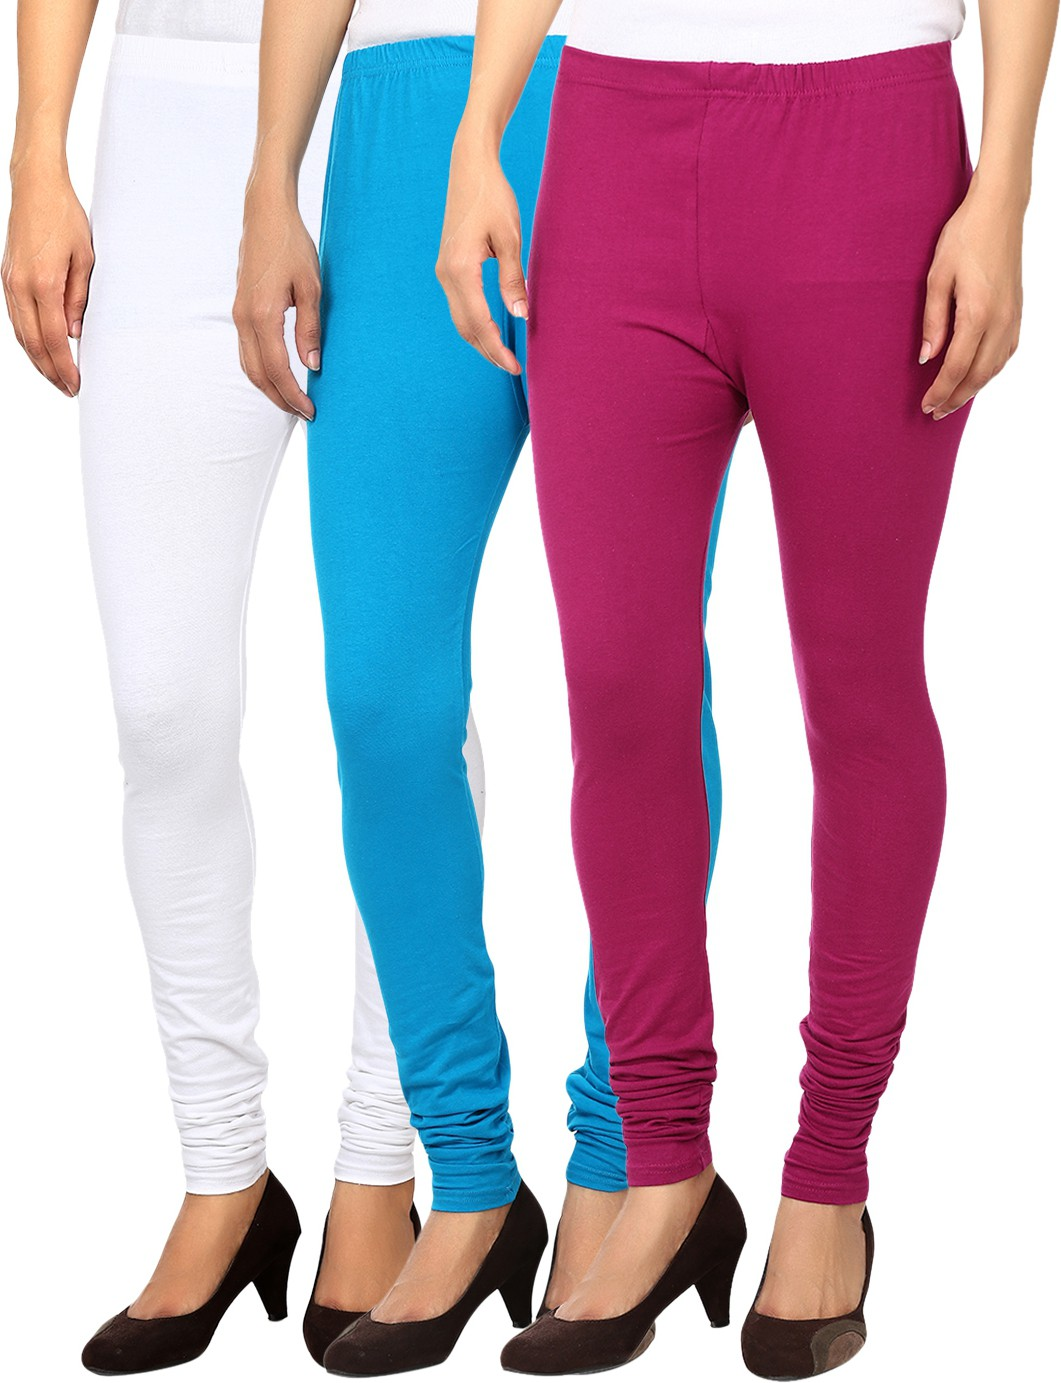 Awa Womens Multicolor Leggings(Pack of 3)